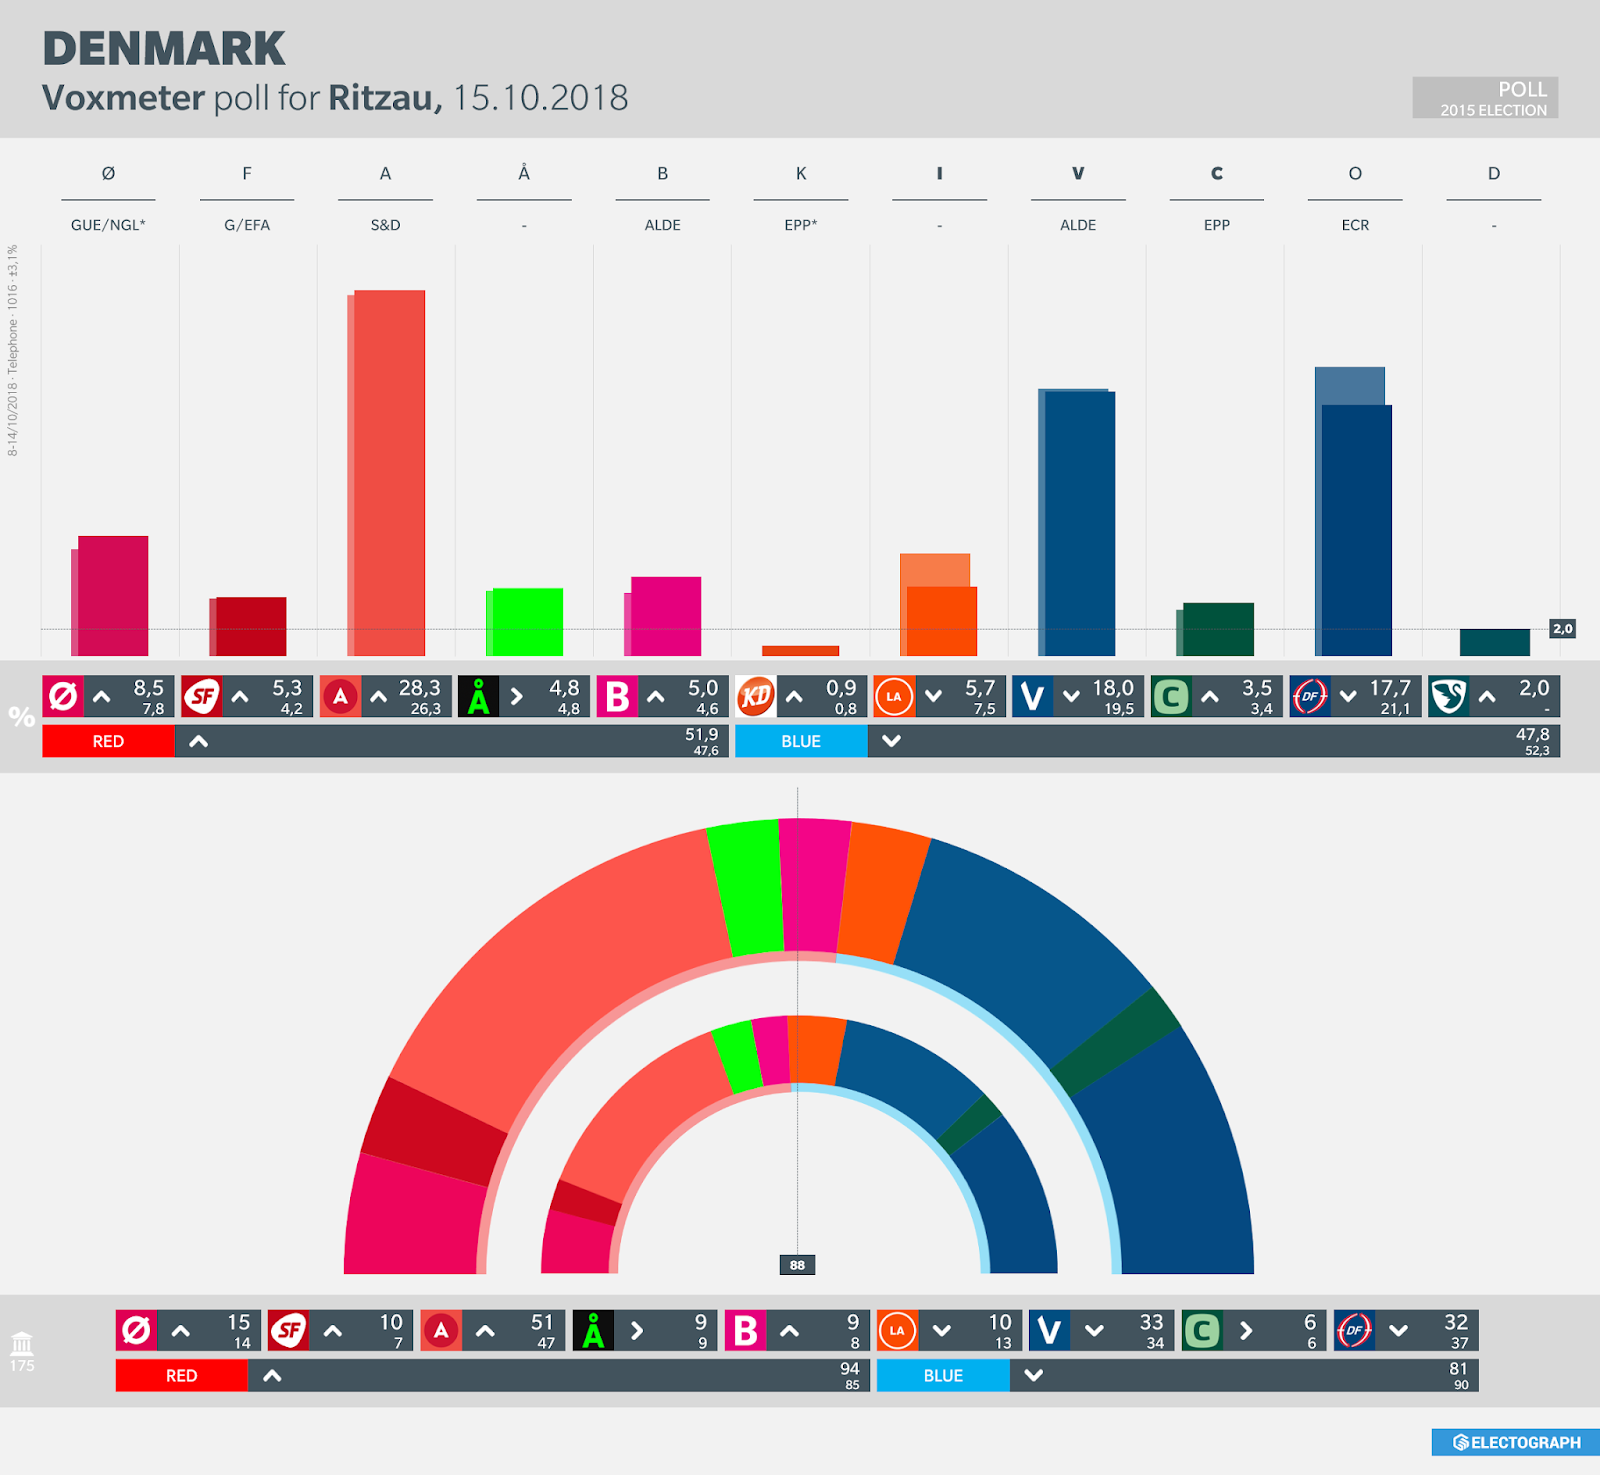 DENMARK: Voxmeter poll chart for Ritzau, October 2018